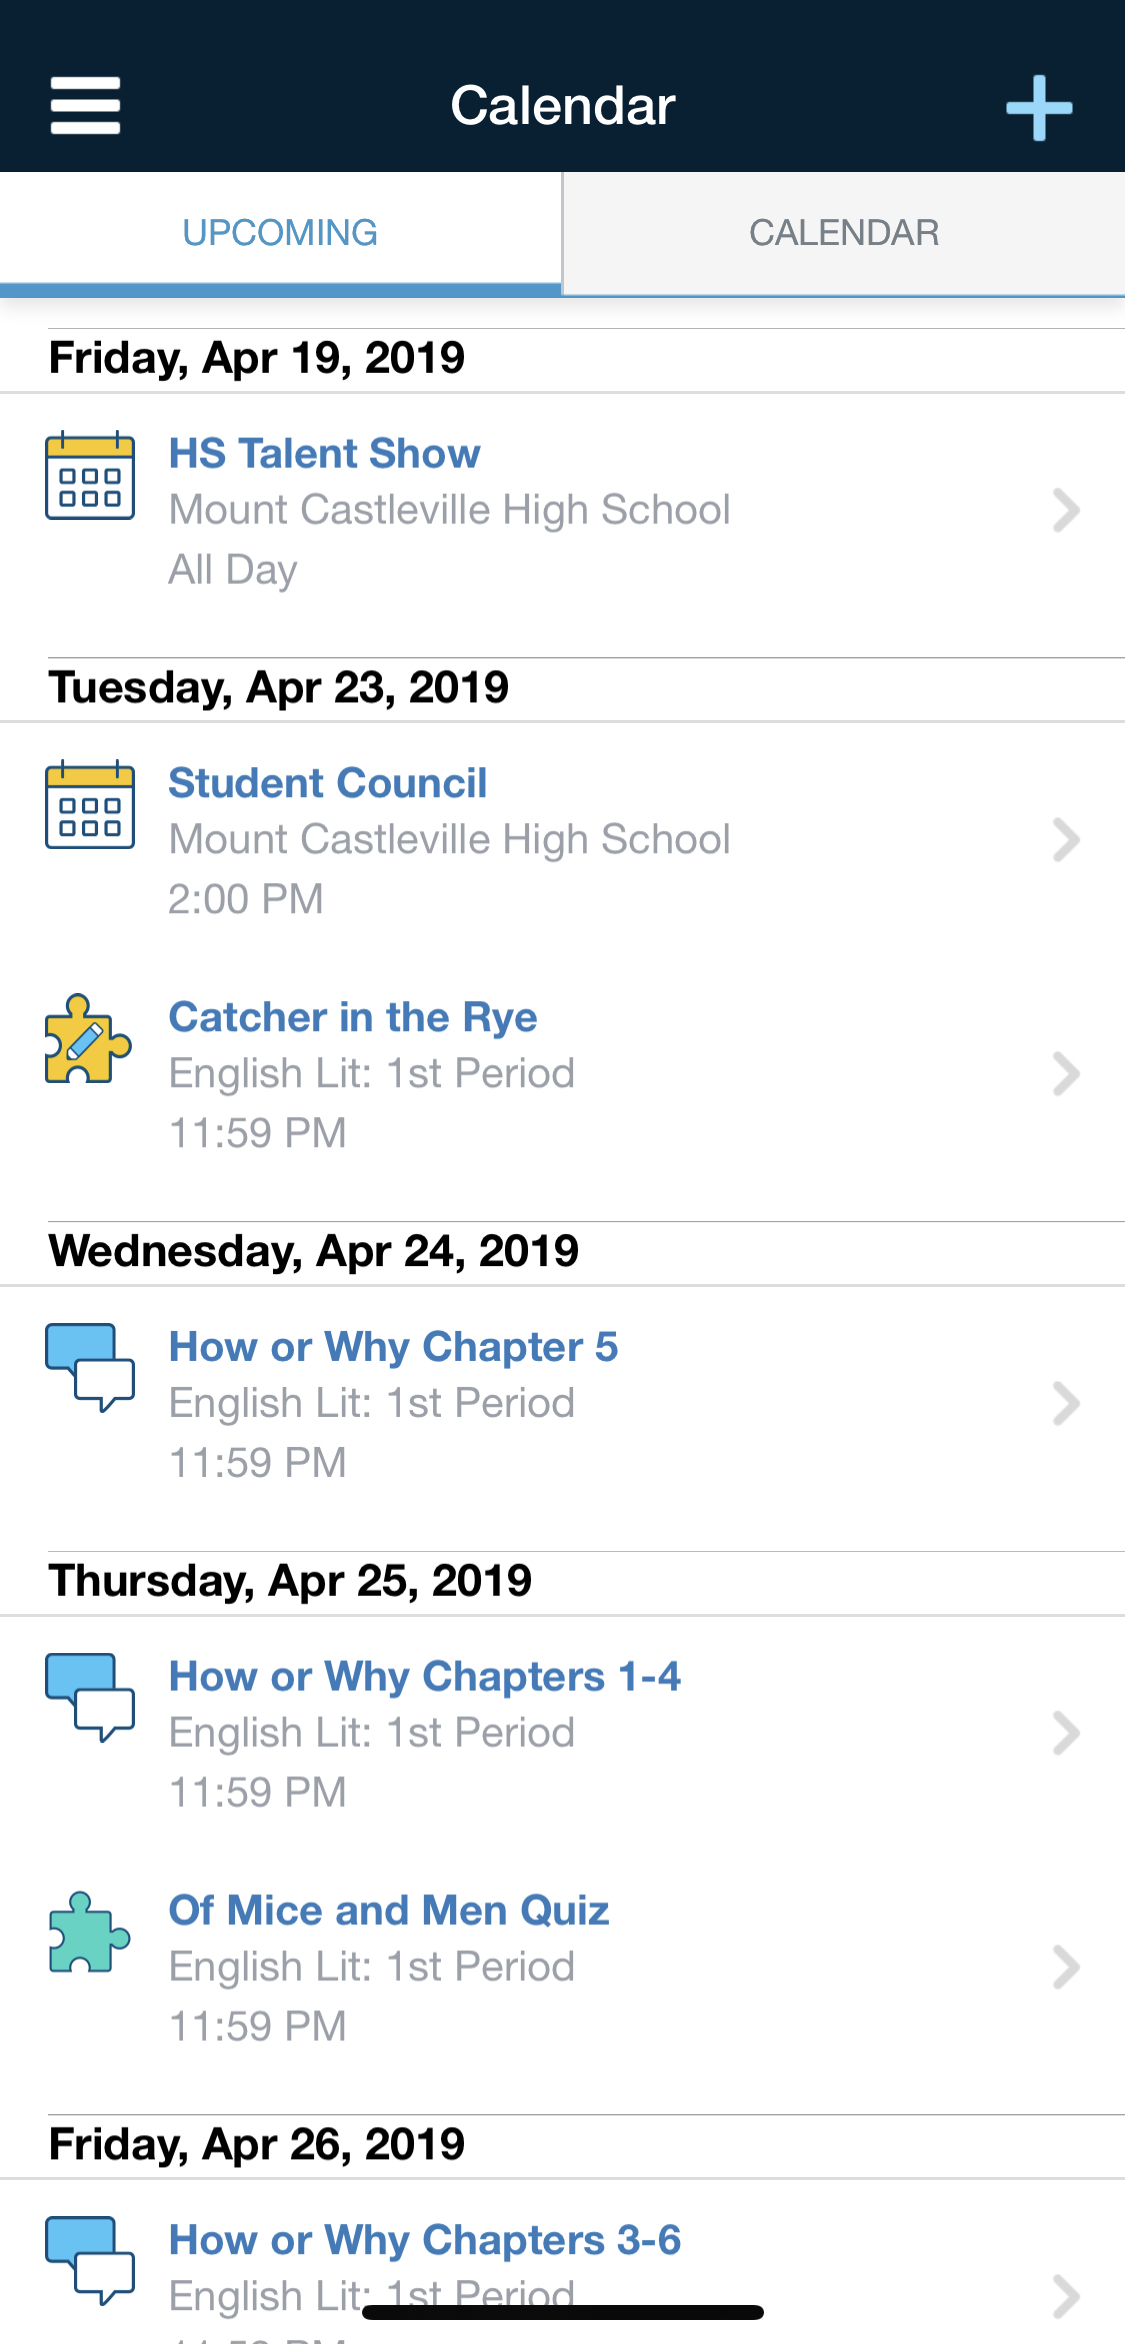 22_iPhoneX_6.7.0_Assessments_Upcoming_Calendar_Student.jpg